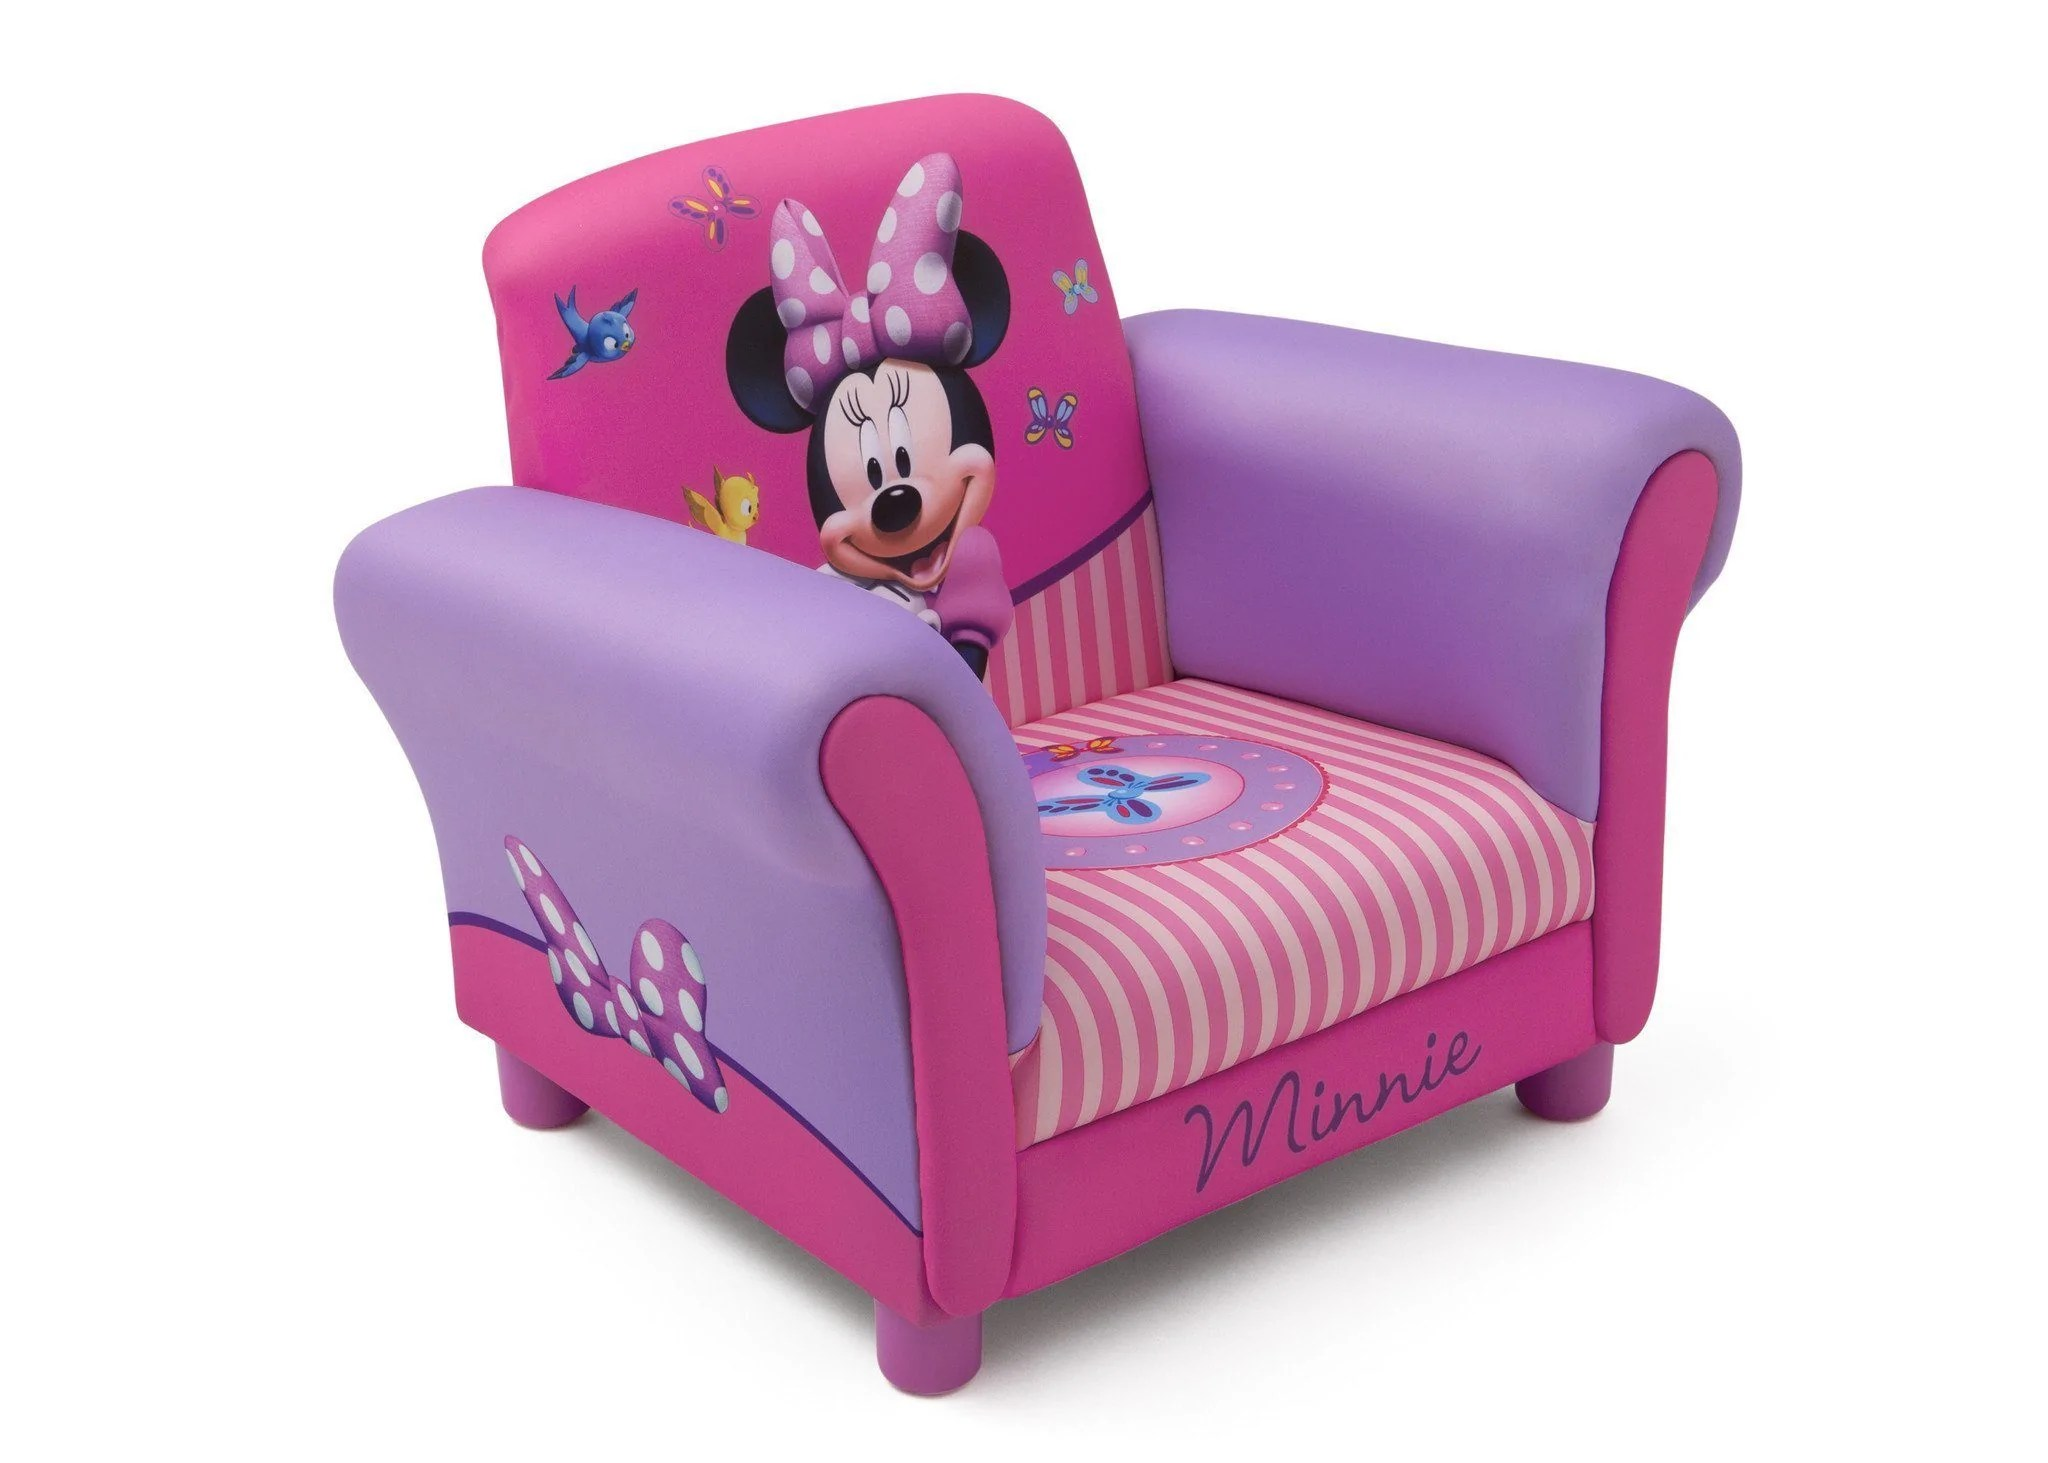 minnie mouse upholstered chair folding amazon india delta children